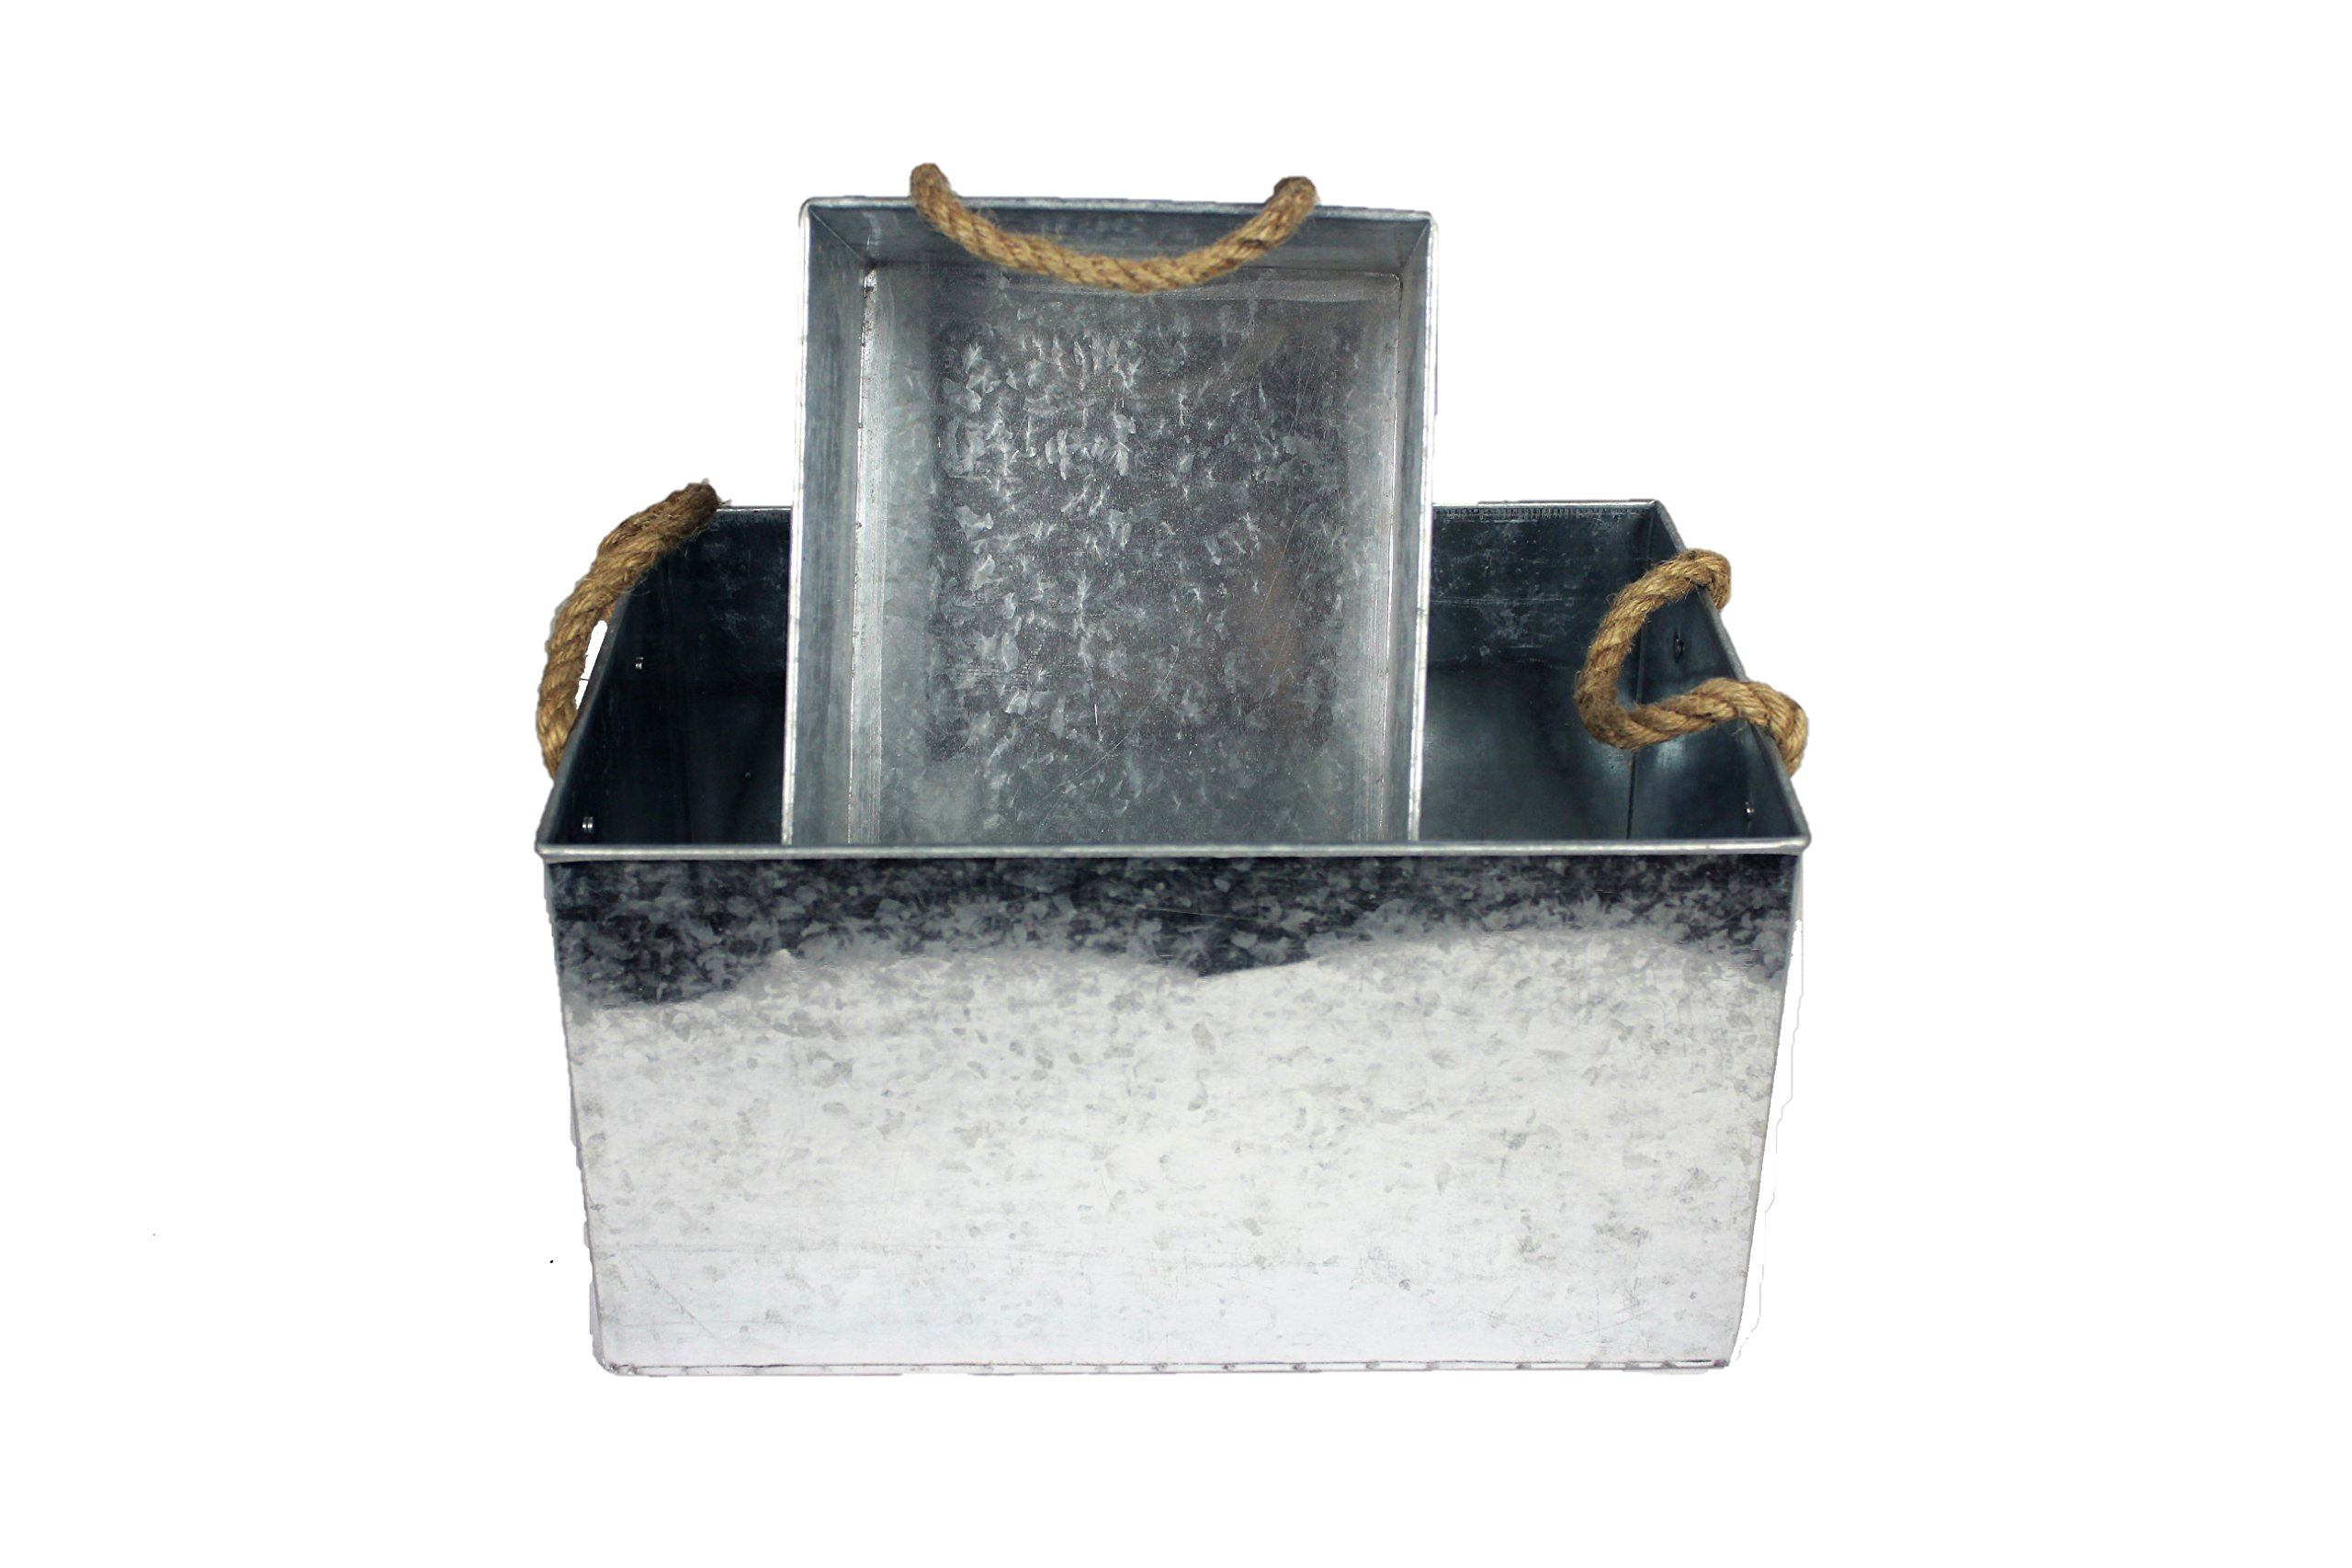 BW Decor Spotted Galvanized Metal Storage Bin Basket With Rope Handle Country Home Kitchen Deco by BW Decor (Image #2)